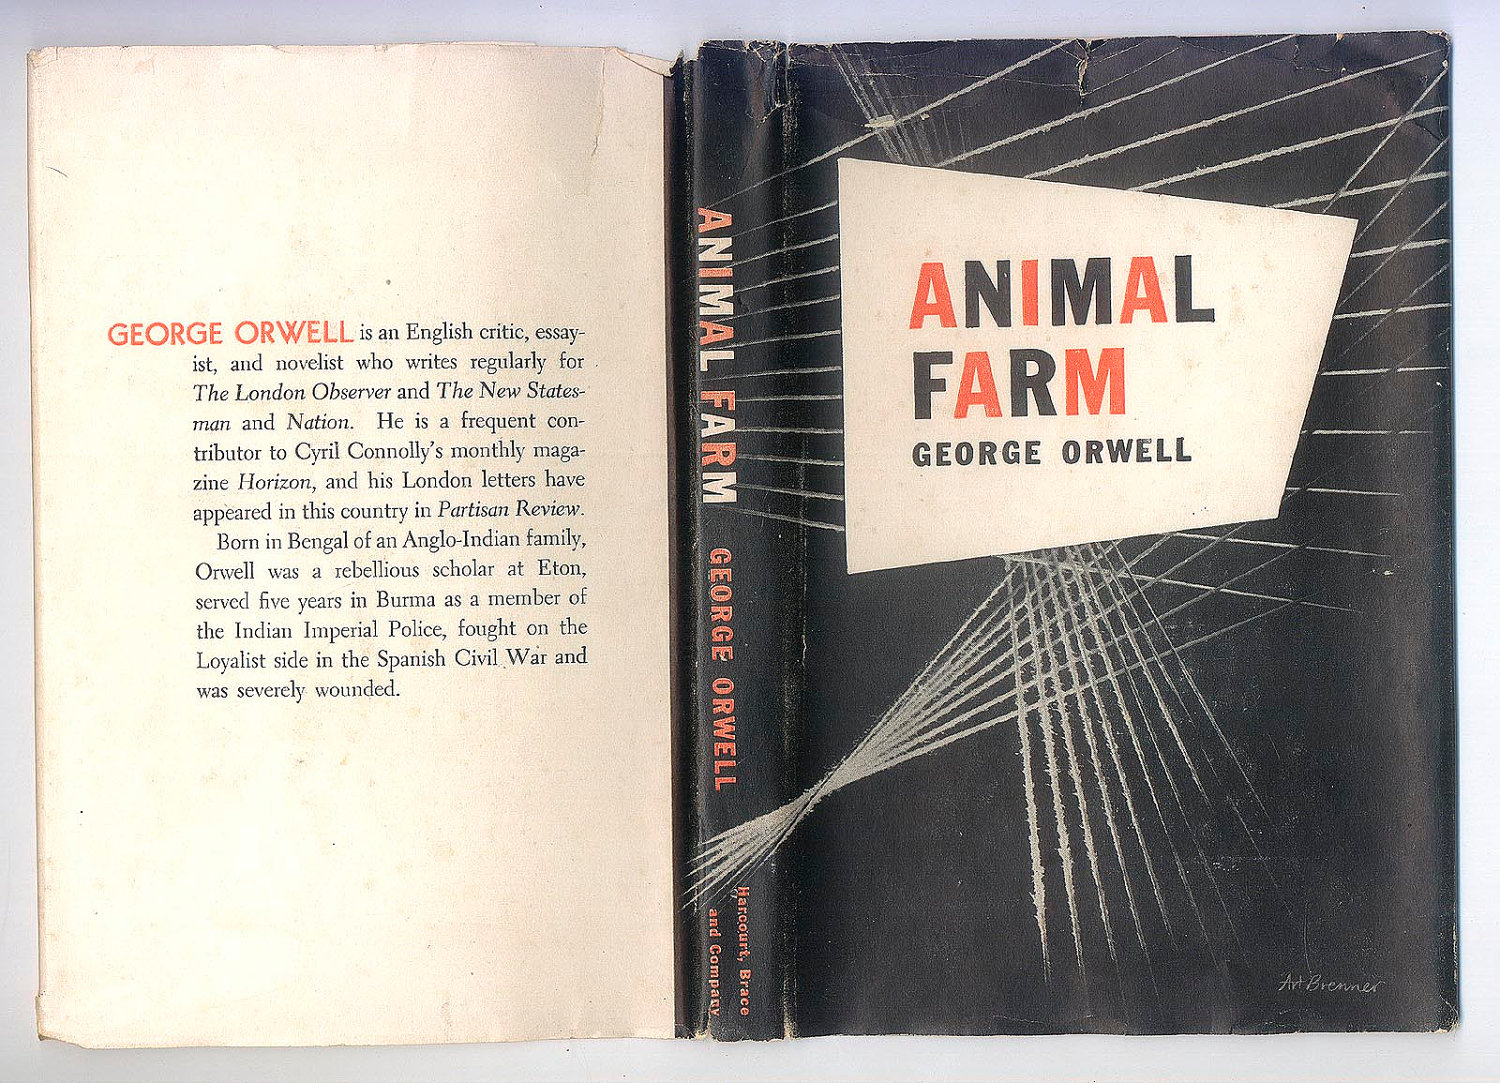 thesis statement for george orwell s animal farm 100% original thesis statement for george orwell s animal farm